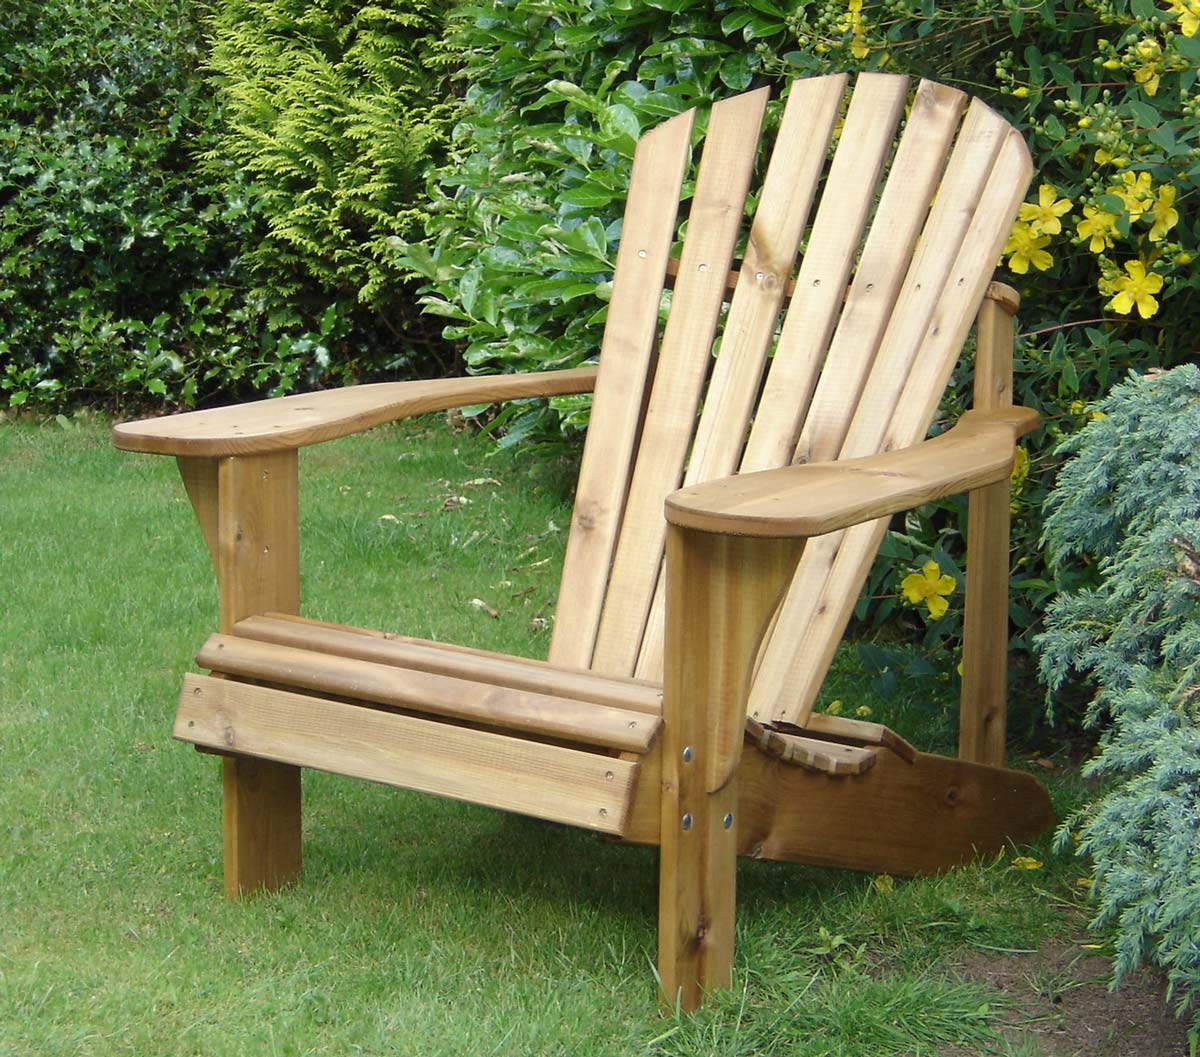 adirondack chair kit alfresco furniture. Black Bedroom Furniture Sets. Home Design Ideas